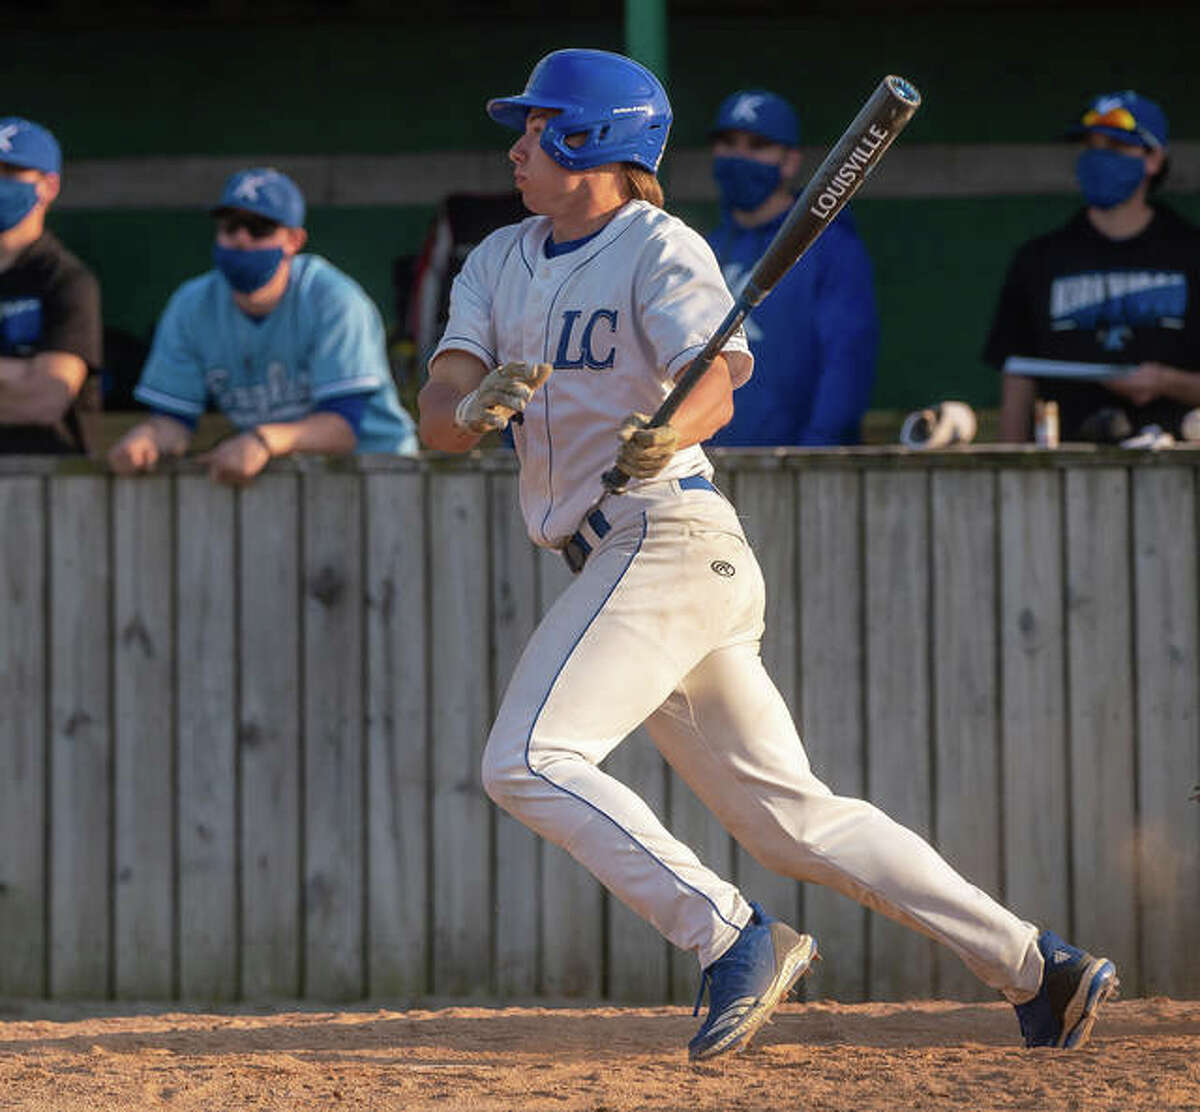 LCCC's Billy Beckham, a freshman outfielder from Litchfield, has hit a pair of home runs with nine RBIs heading unto Tuesday's game at St. Charles.